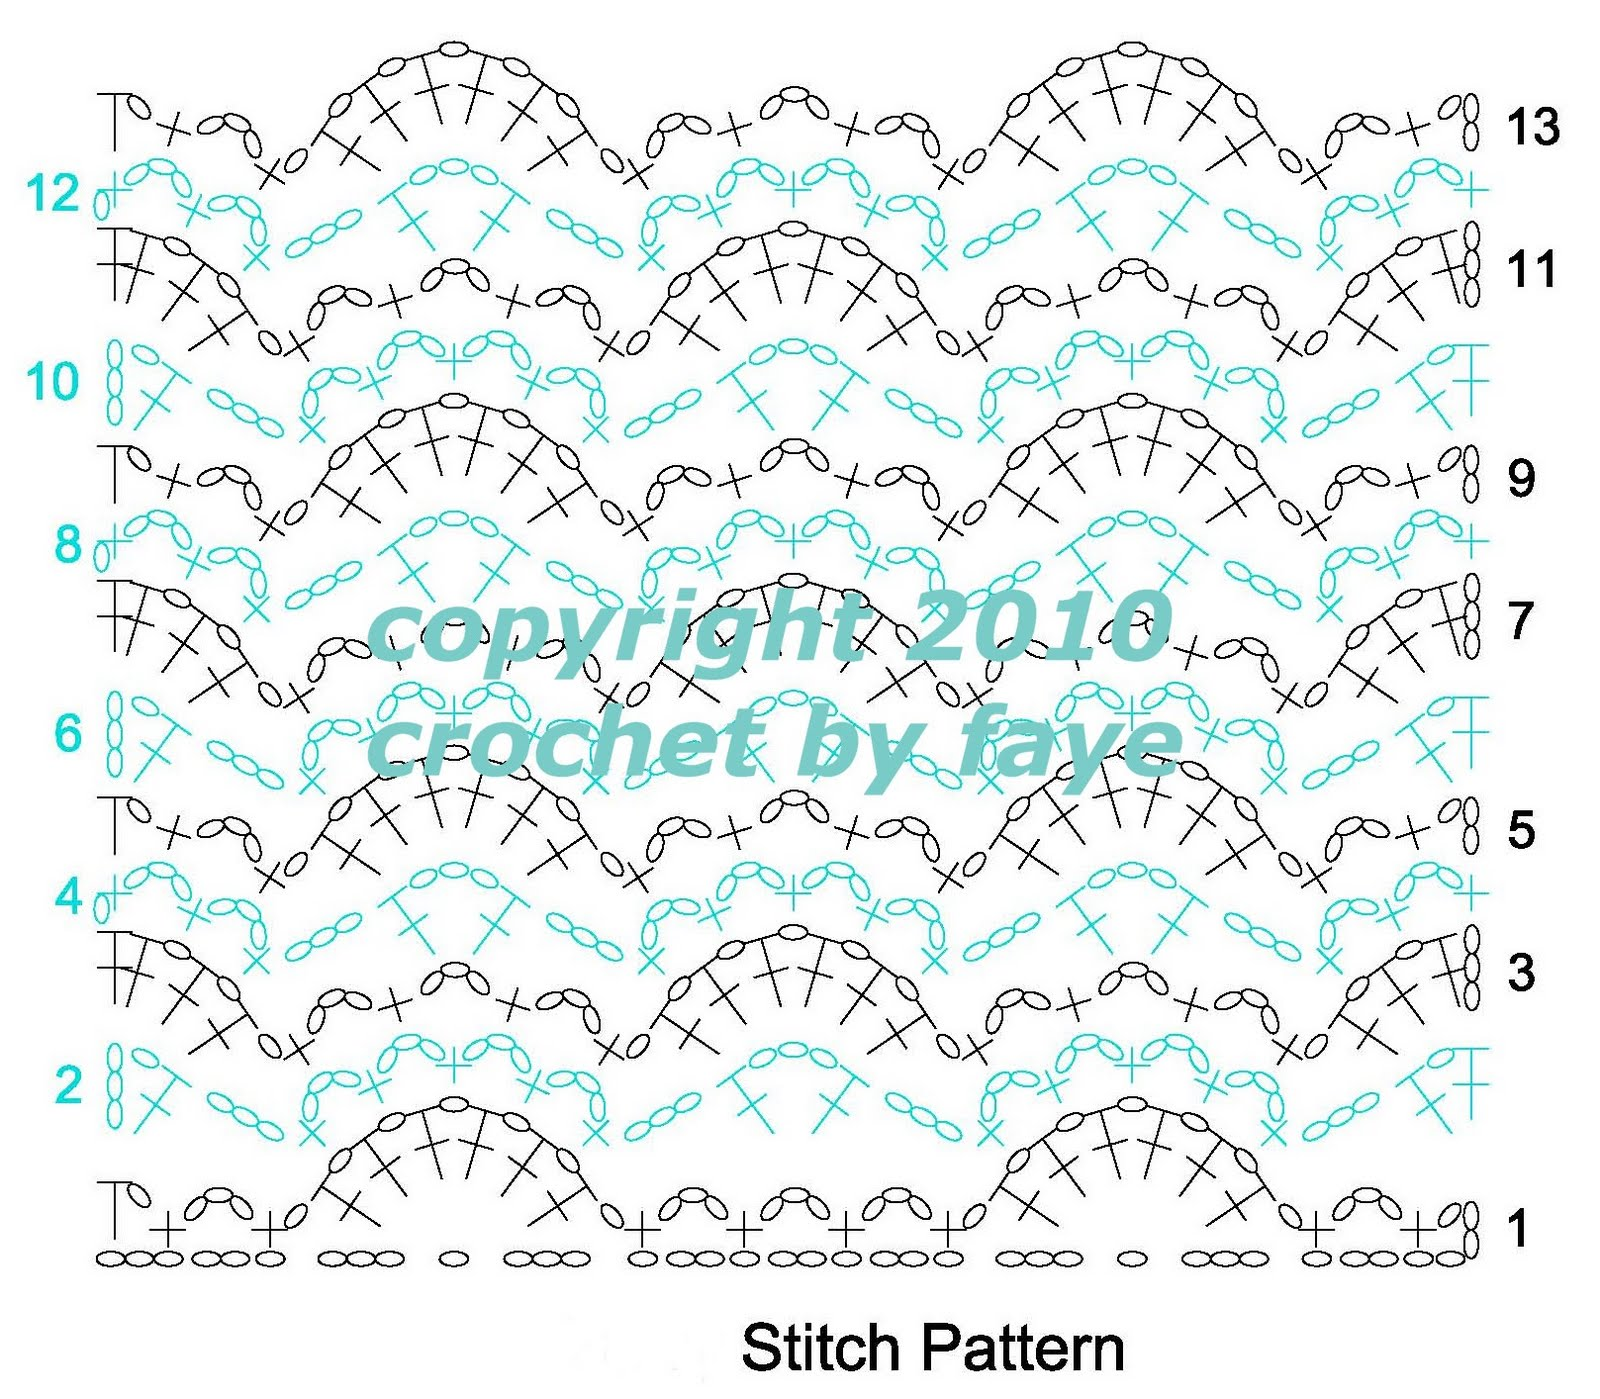 Crochet Stitches Patterns : Crochet Patterns Stitches - Catalog of Patterns